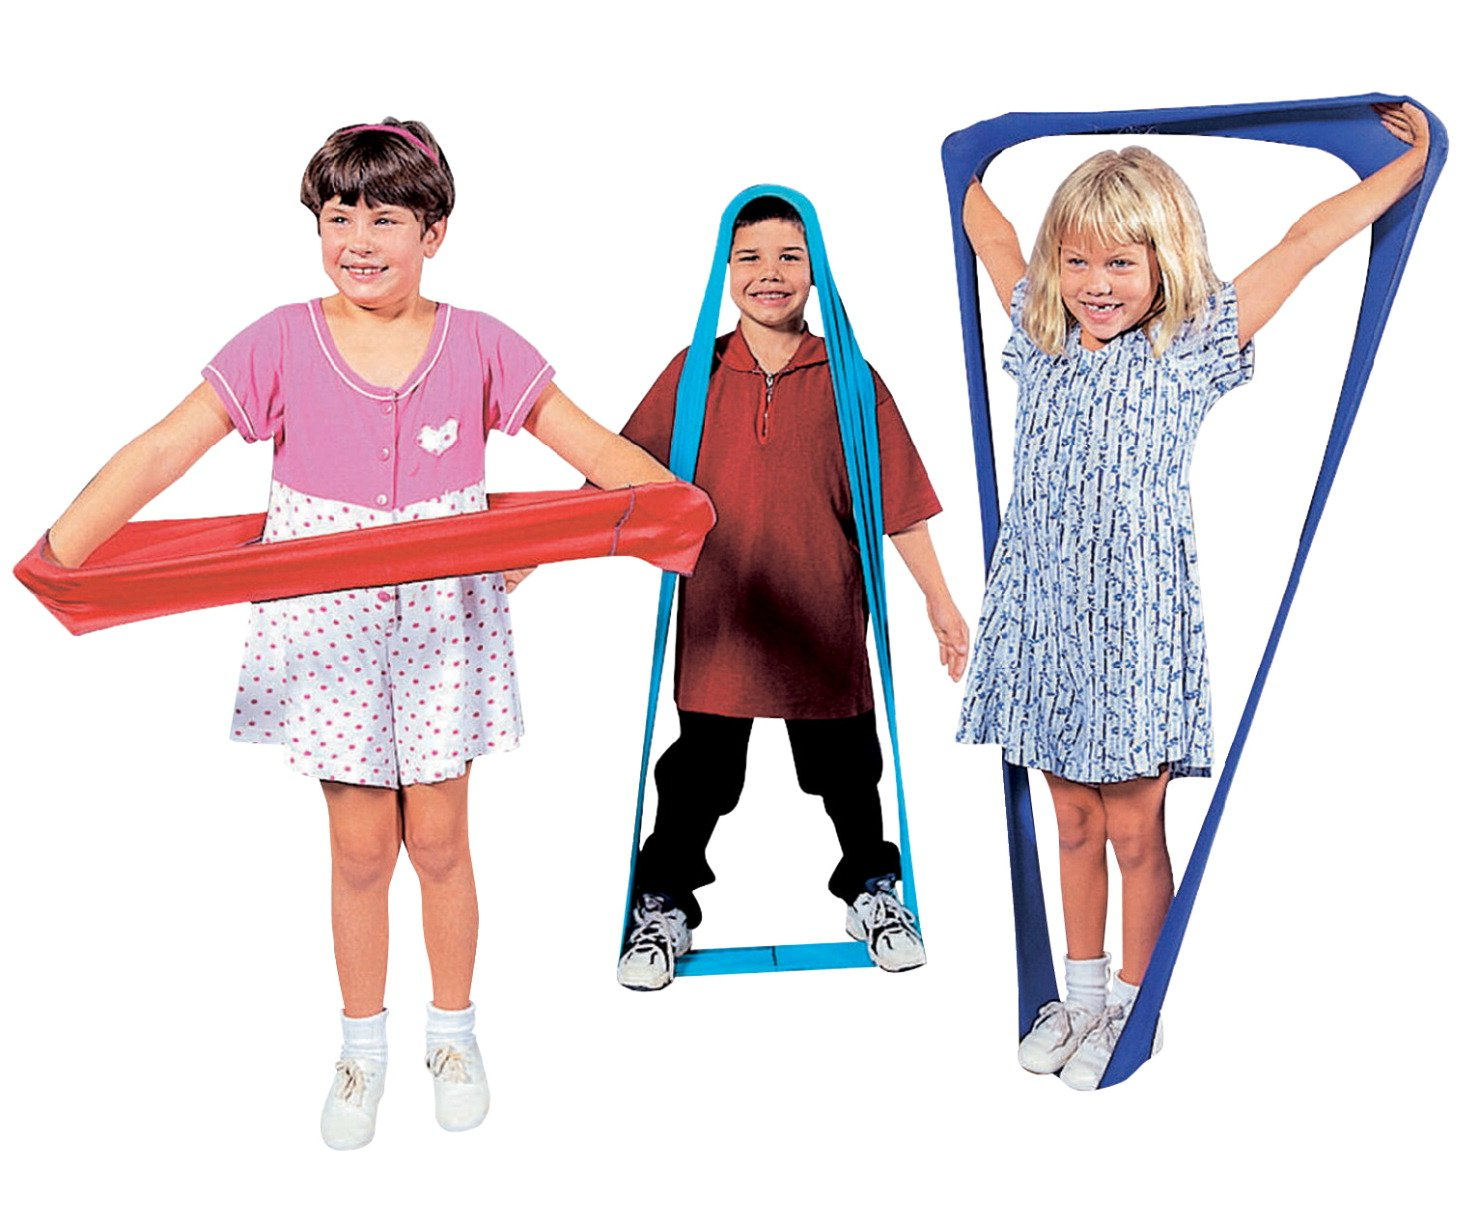 Abilitations Shape Shifters Lycra Stretch Bands with Activity Guide - Set of 6 - Assorted Colors